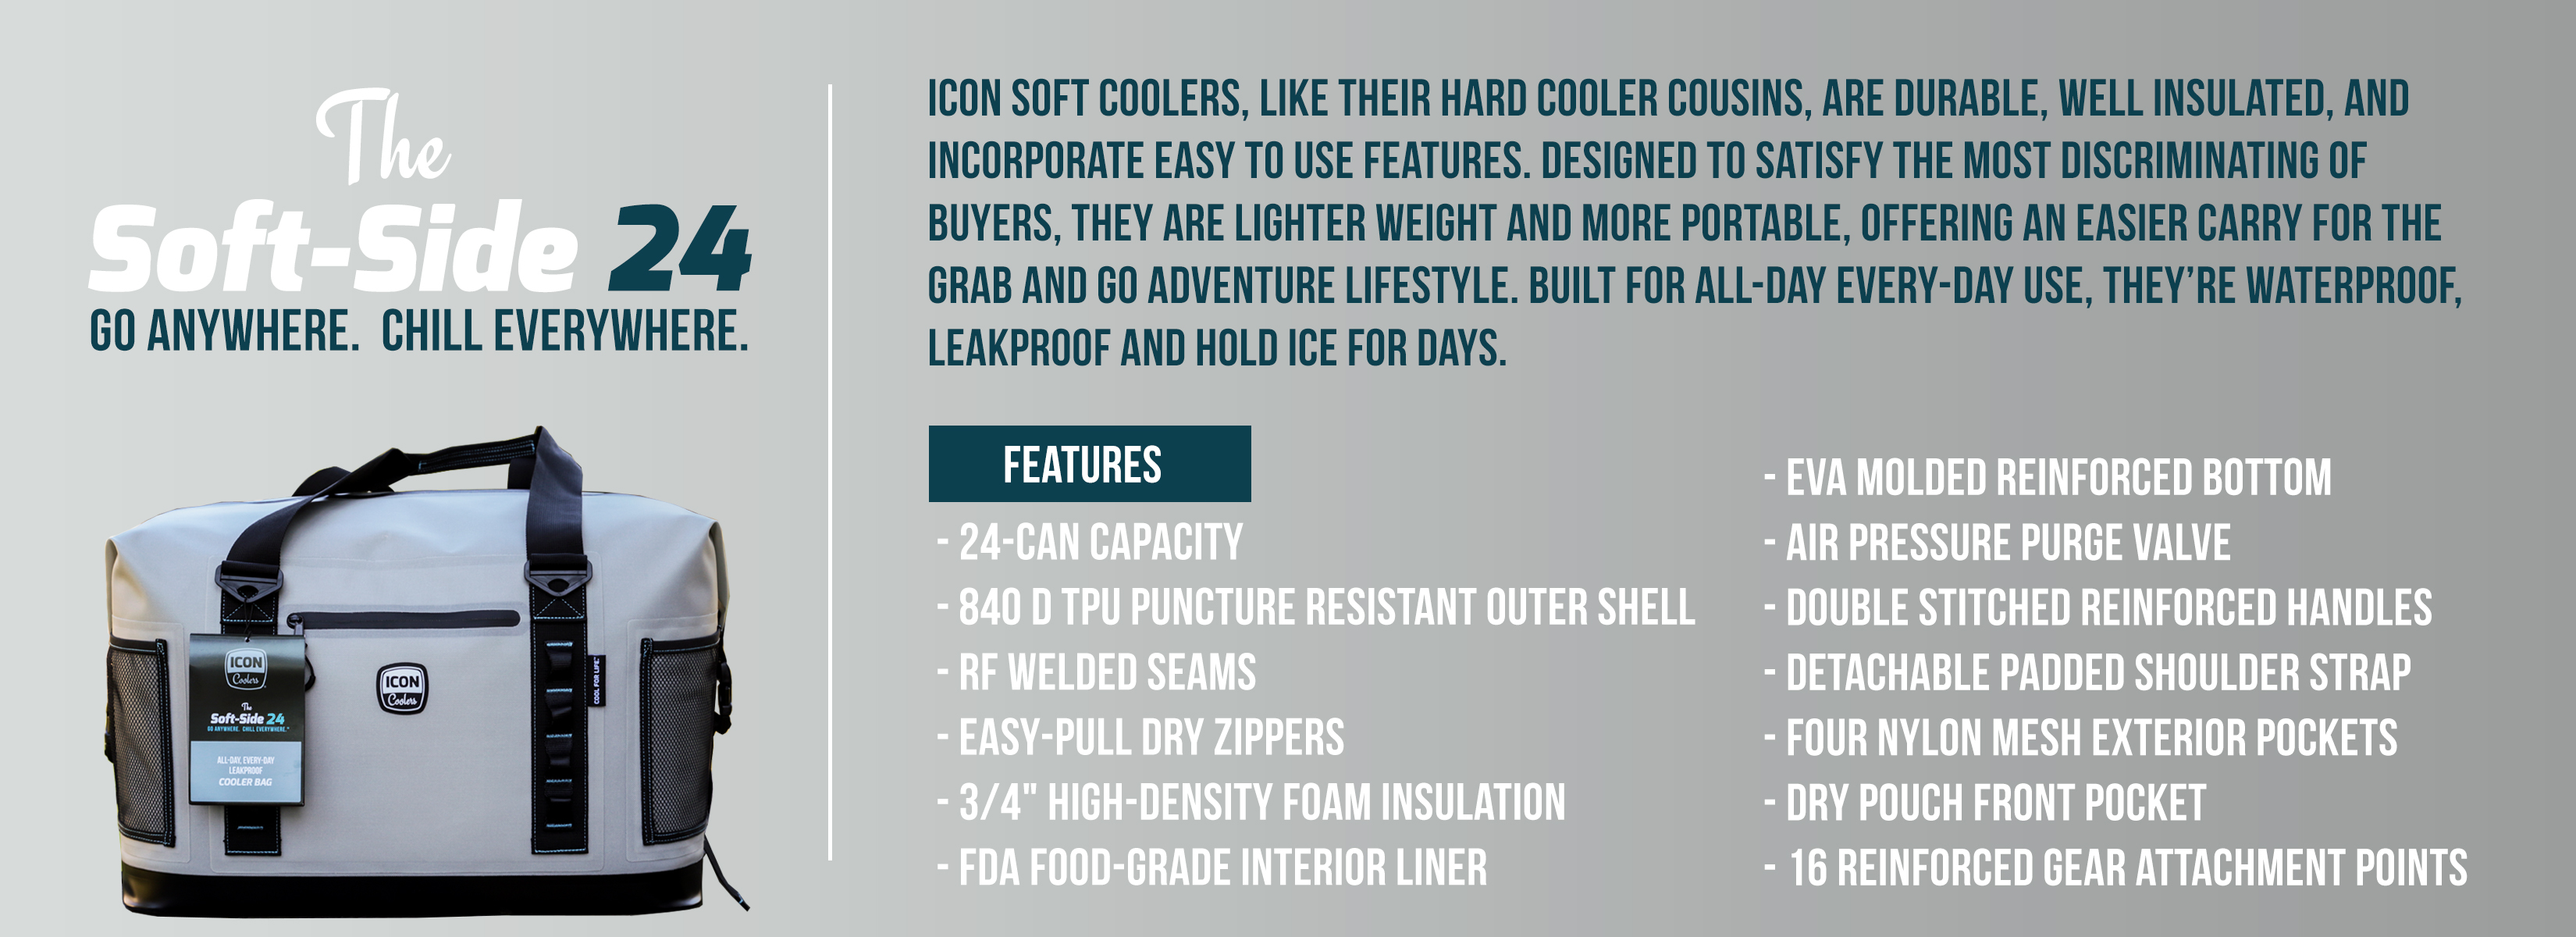 icon-soft-cooler-24-subcat-header.jpg